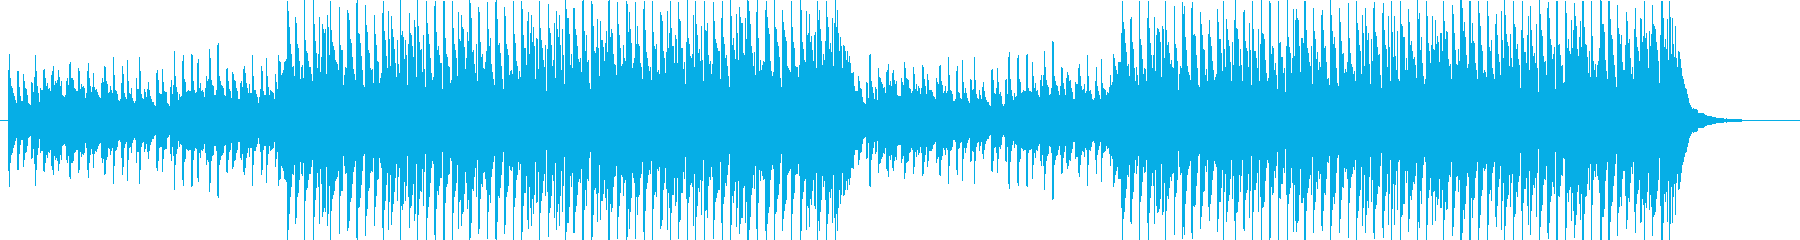 [Live Recording]  Happy Ukulele Corporate's reproduced waveform